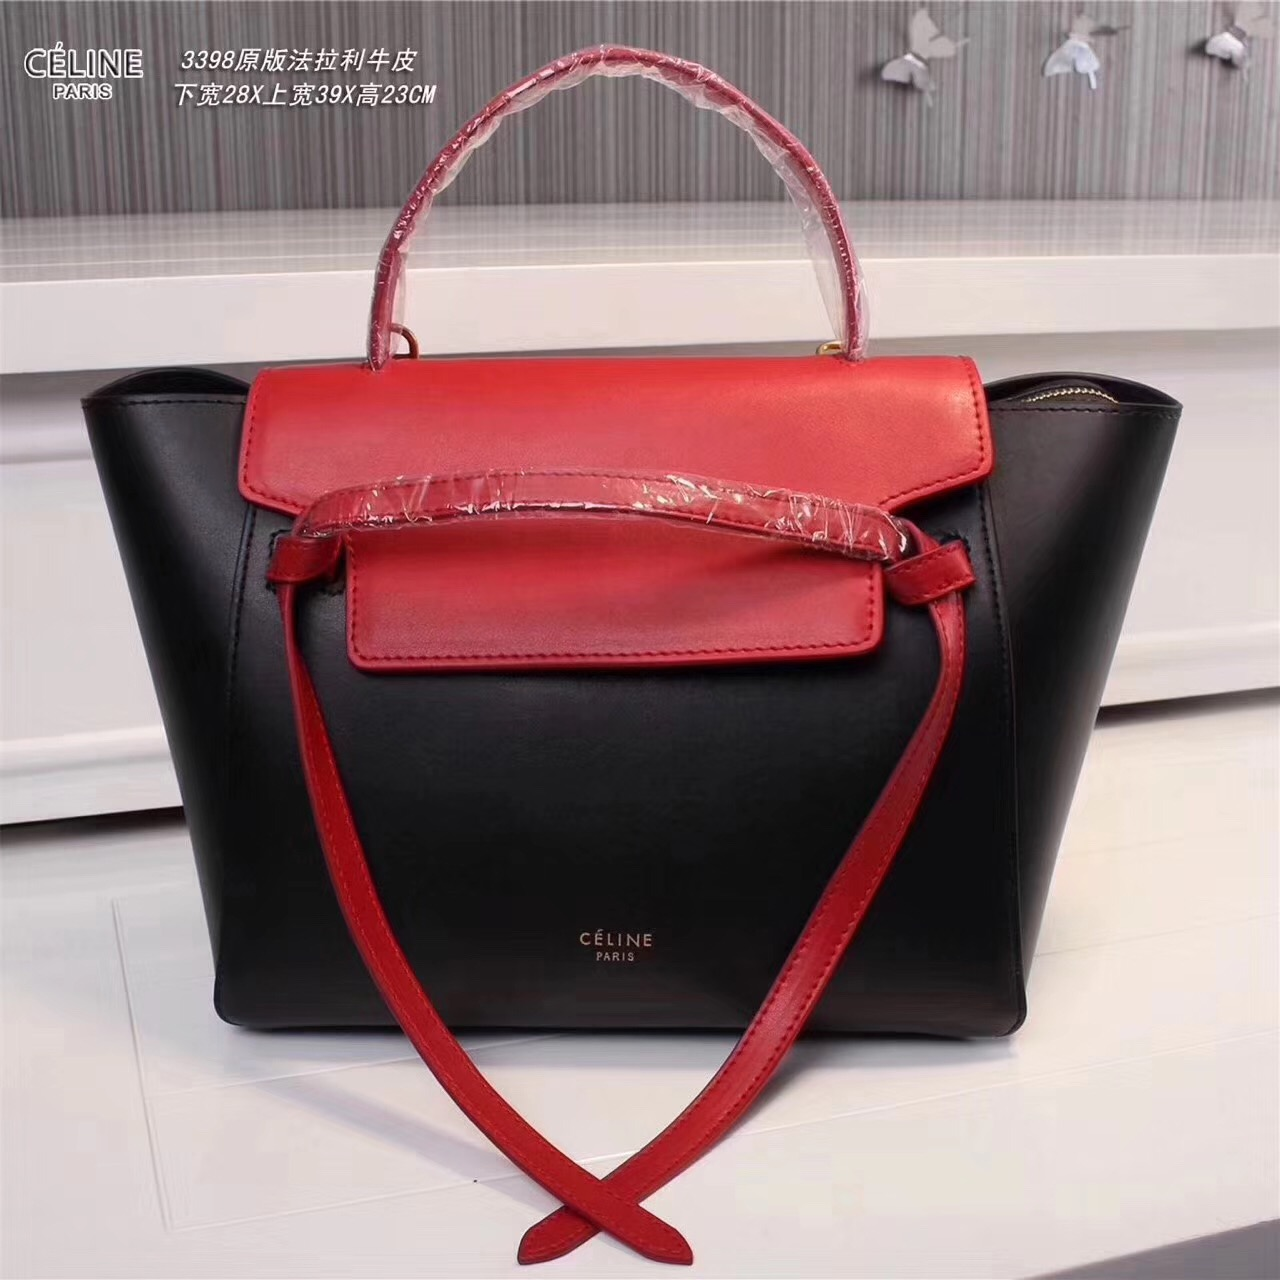 Celine Belt Bag Smooth Leather Tote Handbag Black Red